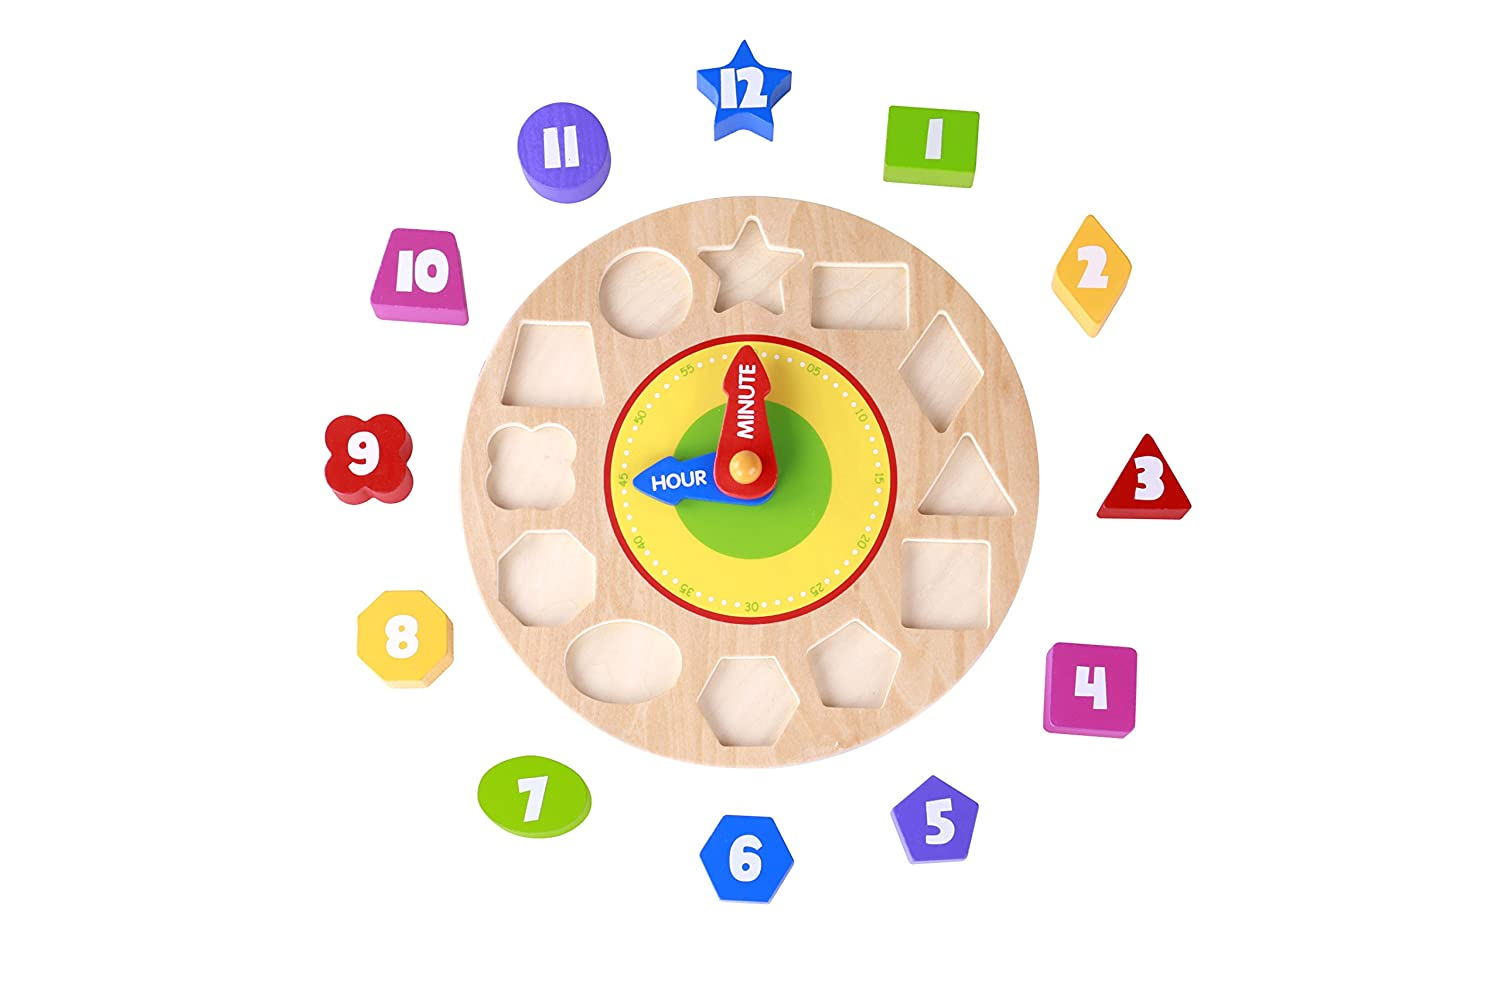 Tooky Toys Wooden Calendar Educational Toy with Activity Blocks for Toddler to Teach Years /& Seasons /& Months /& Days /& Weather